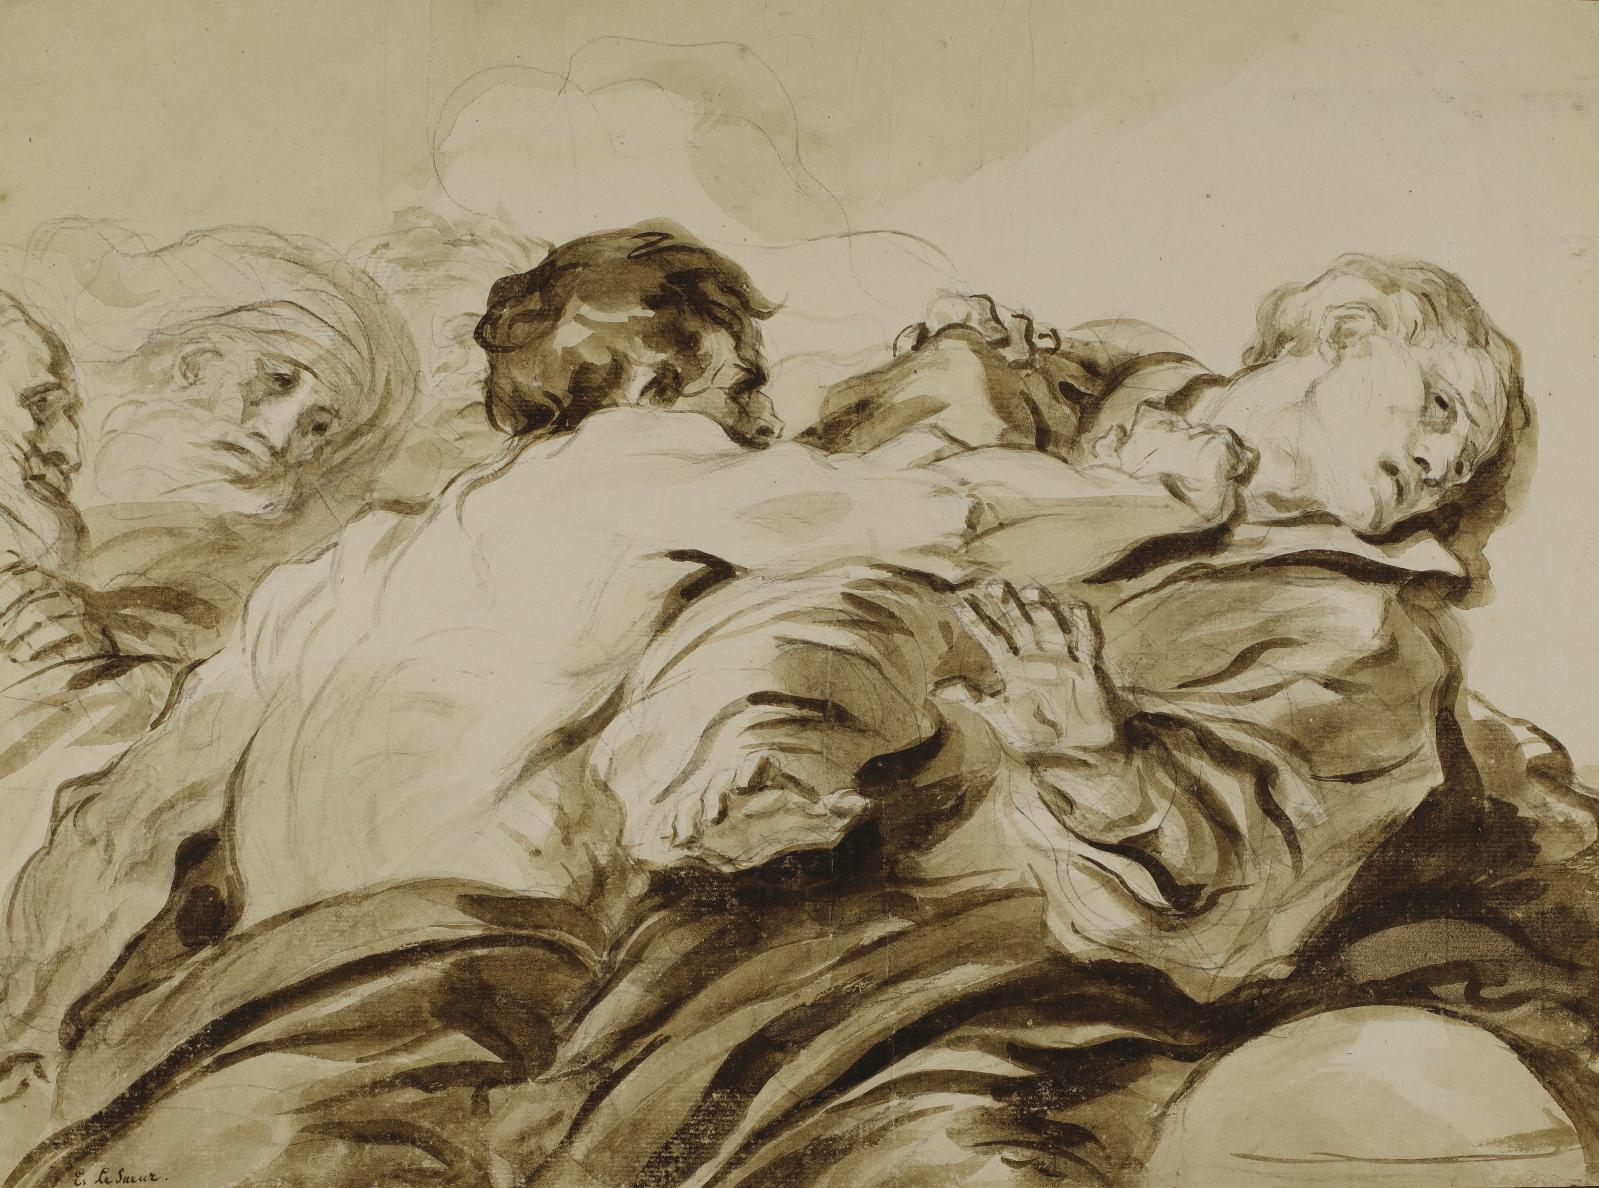 "Jean-Honoré Fragonard (1732-1799), ""L'Attaque"", late 1770s, ink, brown wash, black chalk, 34 x 46 cm."